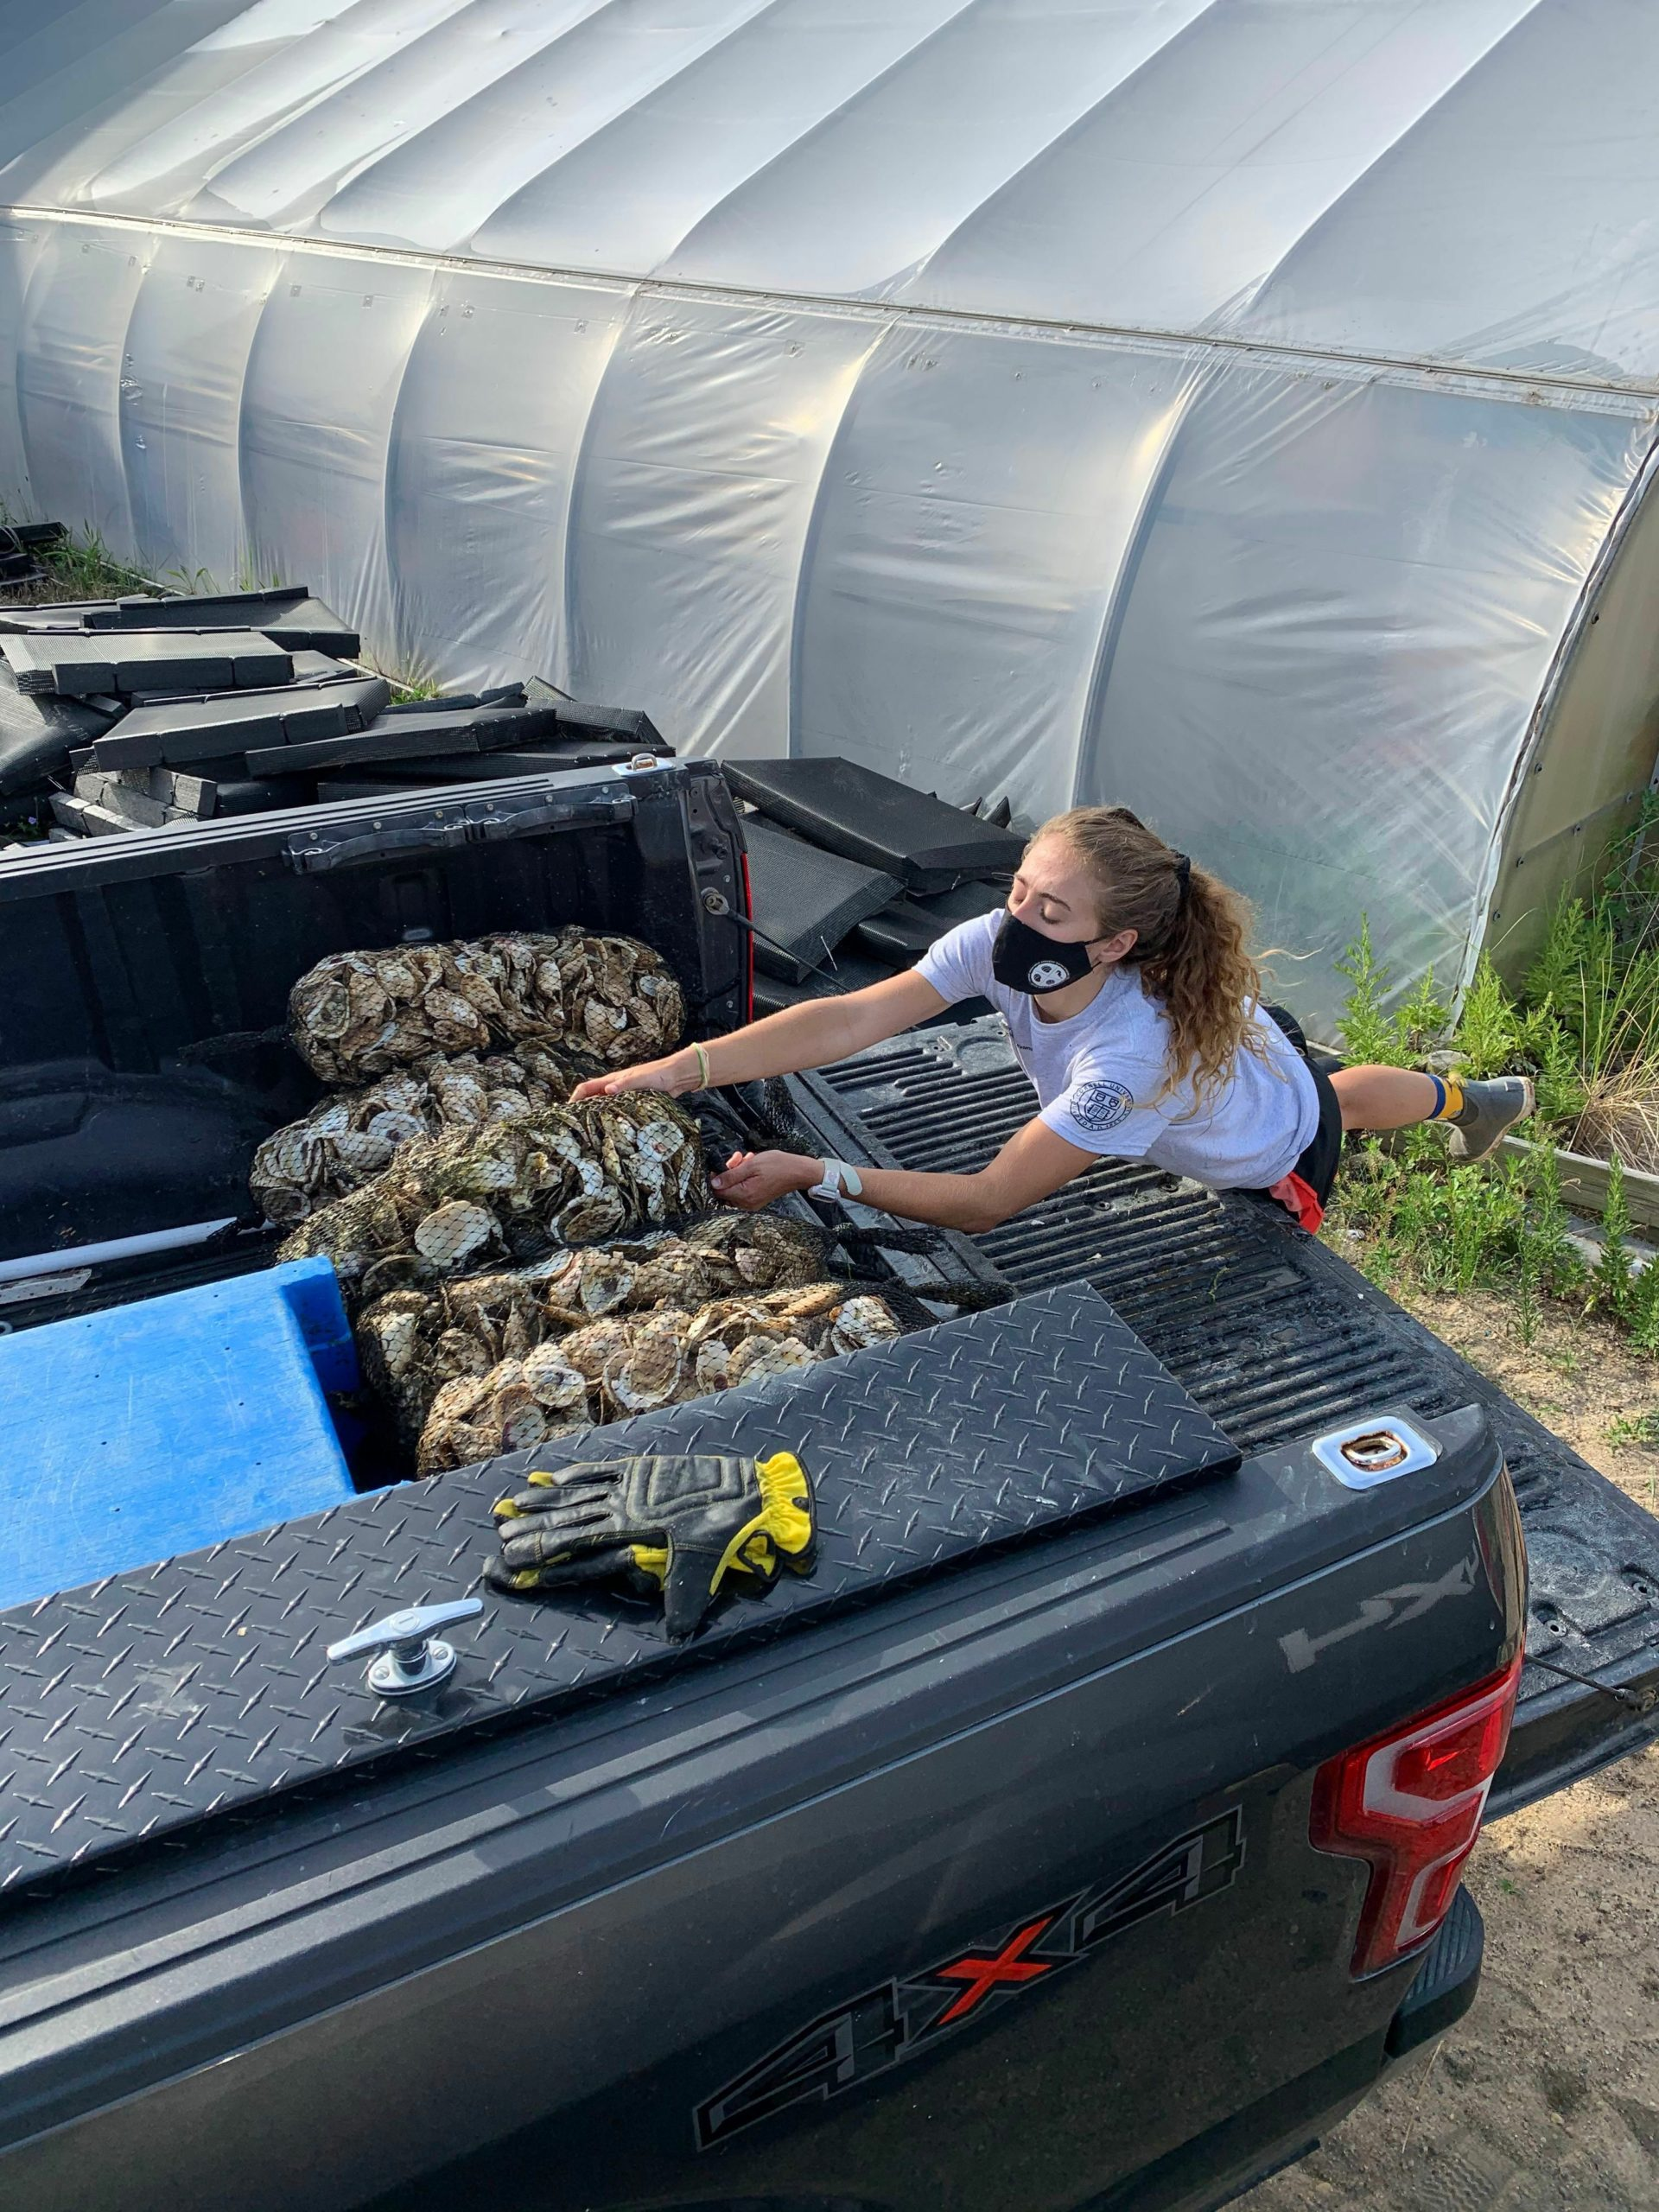 The 100,000 oysters were grown at the Cornell Cooperative Extension Marine Program hatchery in Southold and then placed along the banks of Gurney's Star Island Yacht Club.